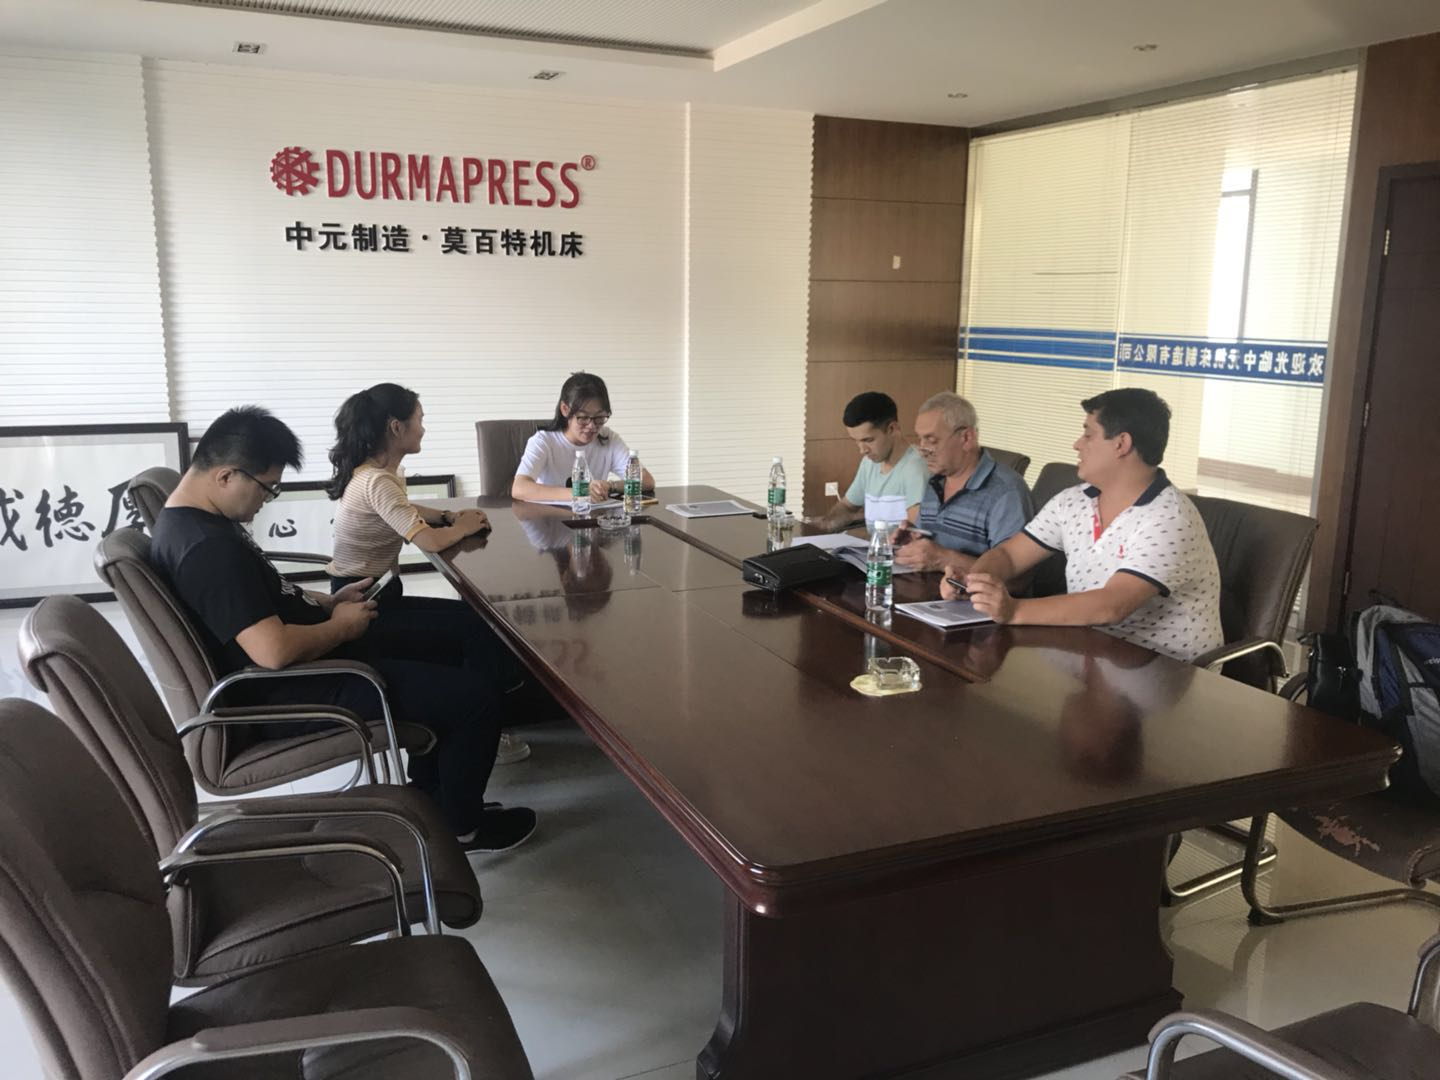 Welcome Clients from Uzbekistan puchase the WC67K 160T 4000 and QC12K 16X4000 with Durmapress